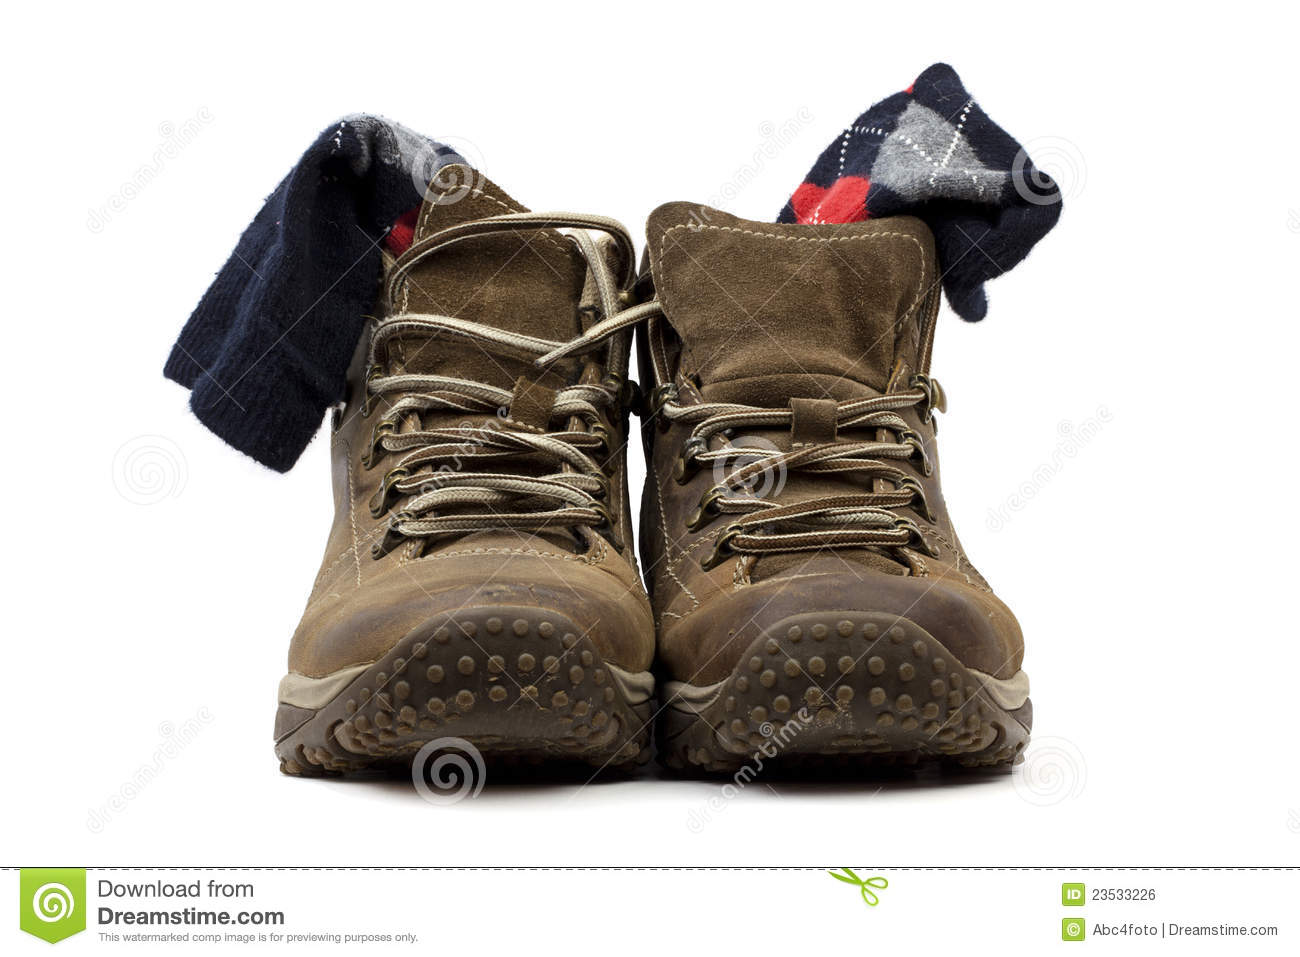 Boots after walking